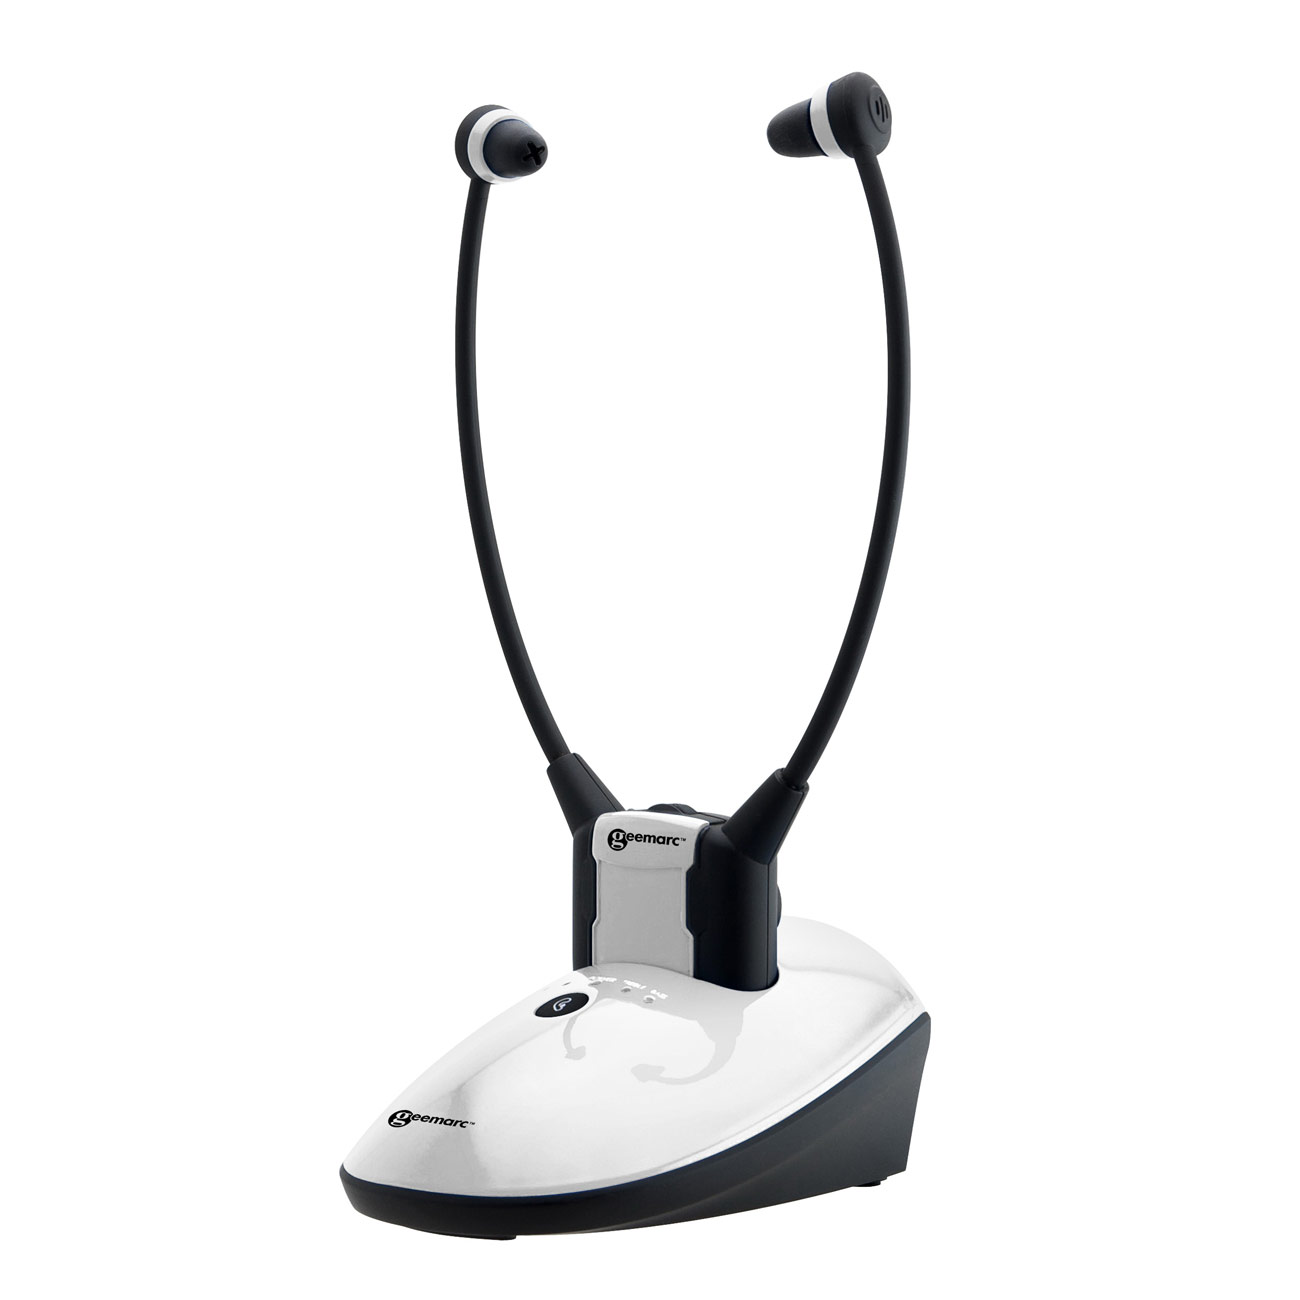 Geemarc CL7350 OPTI Stethoscope Amplified TV Listener